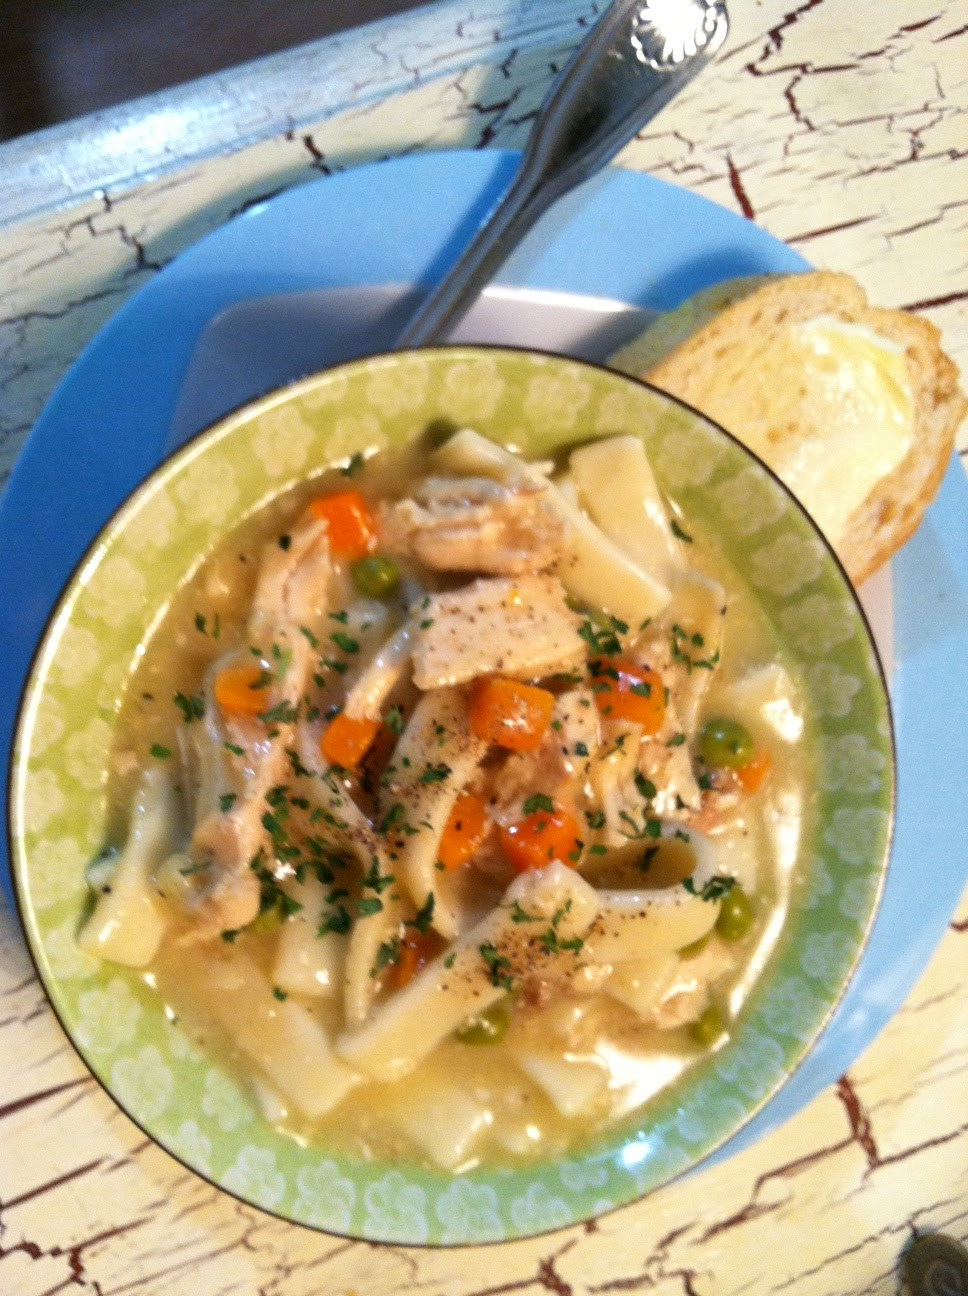 Slow Cooker Chicken And Noodles  SourdoughNative Slow Cooker Chicken and Noodles